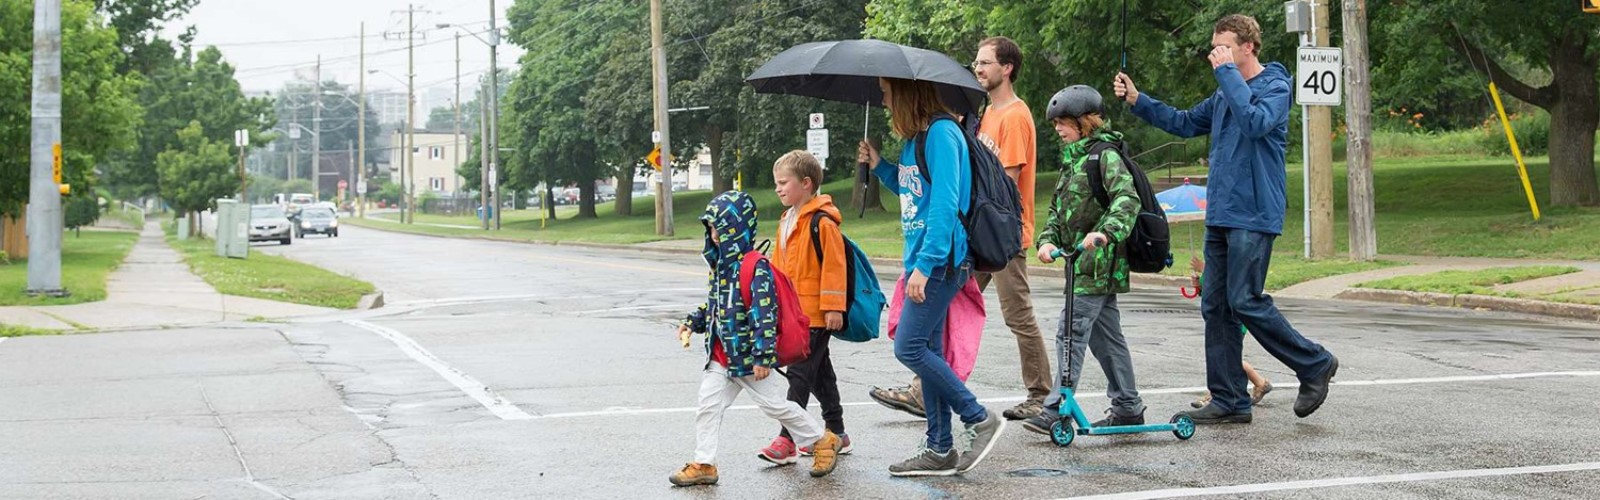 Children and adults walking to school